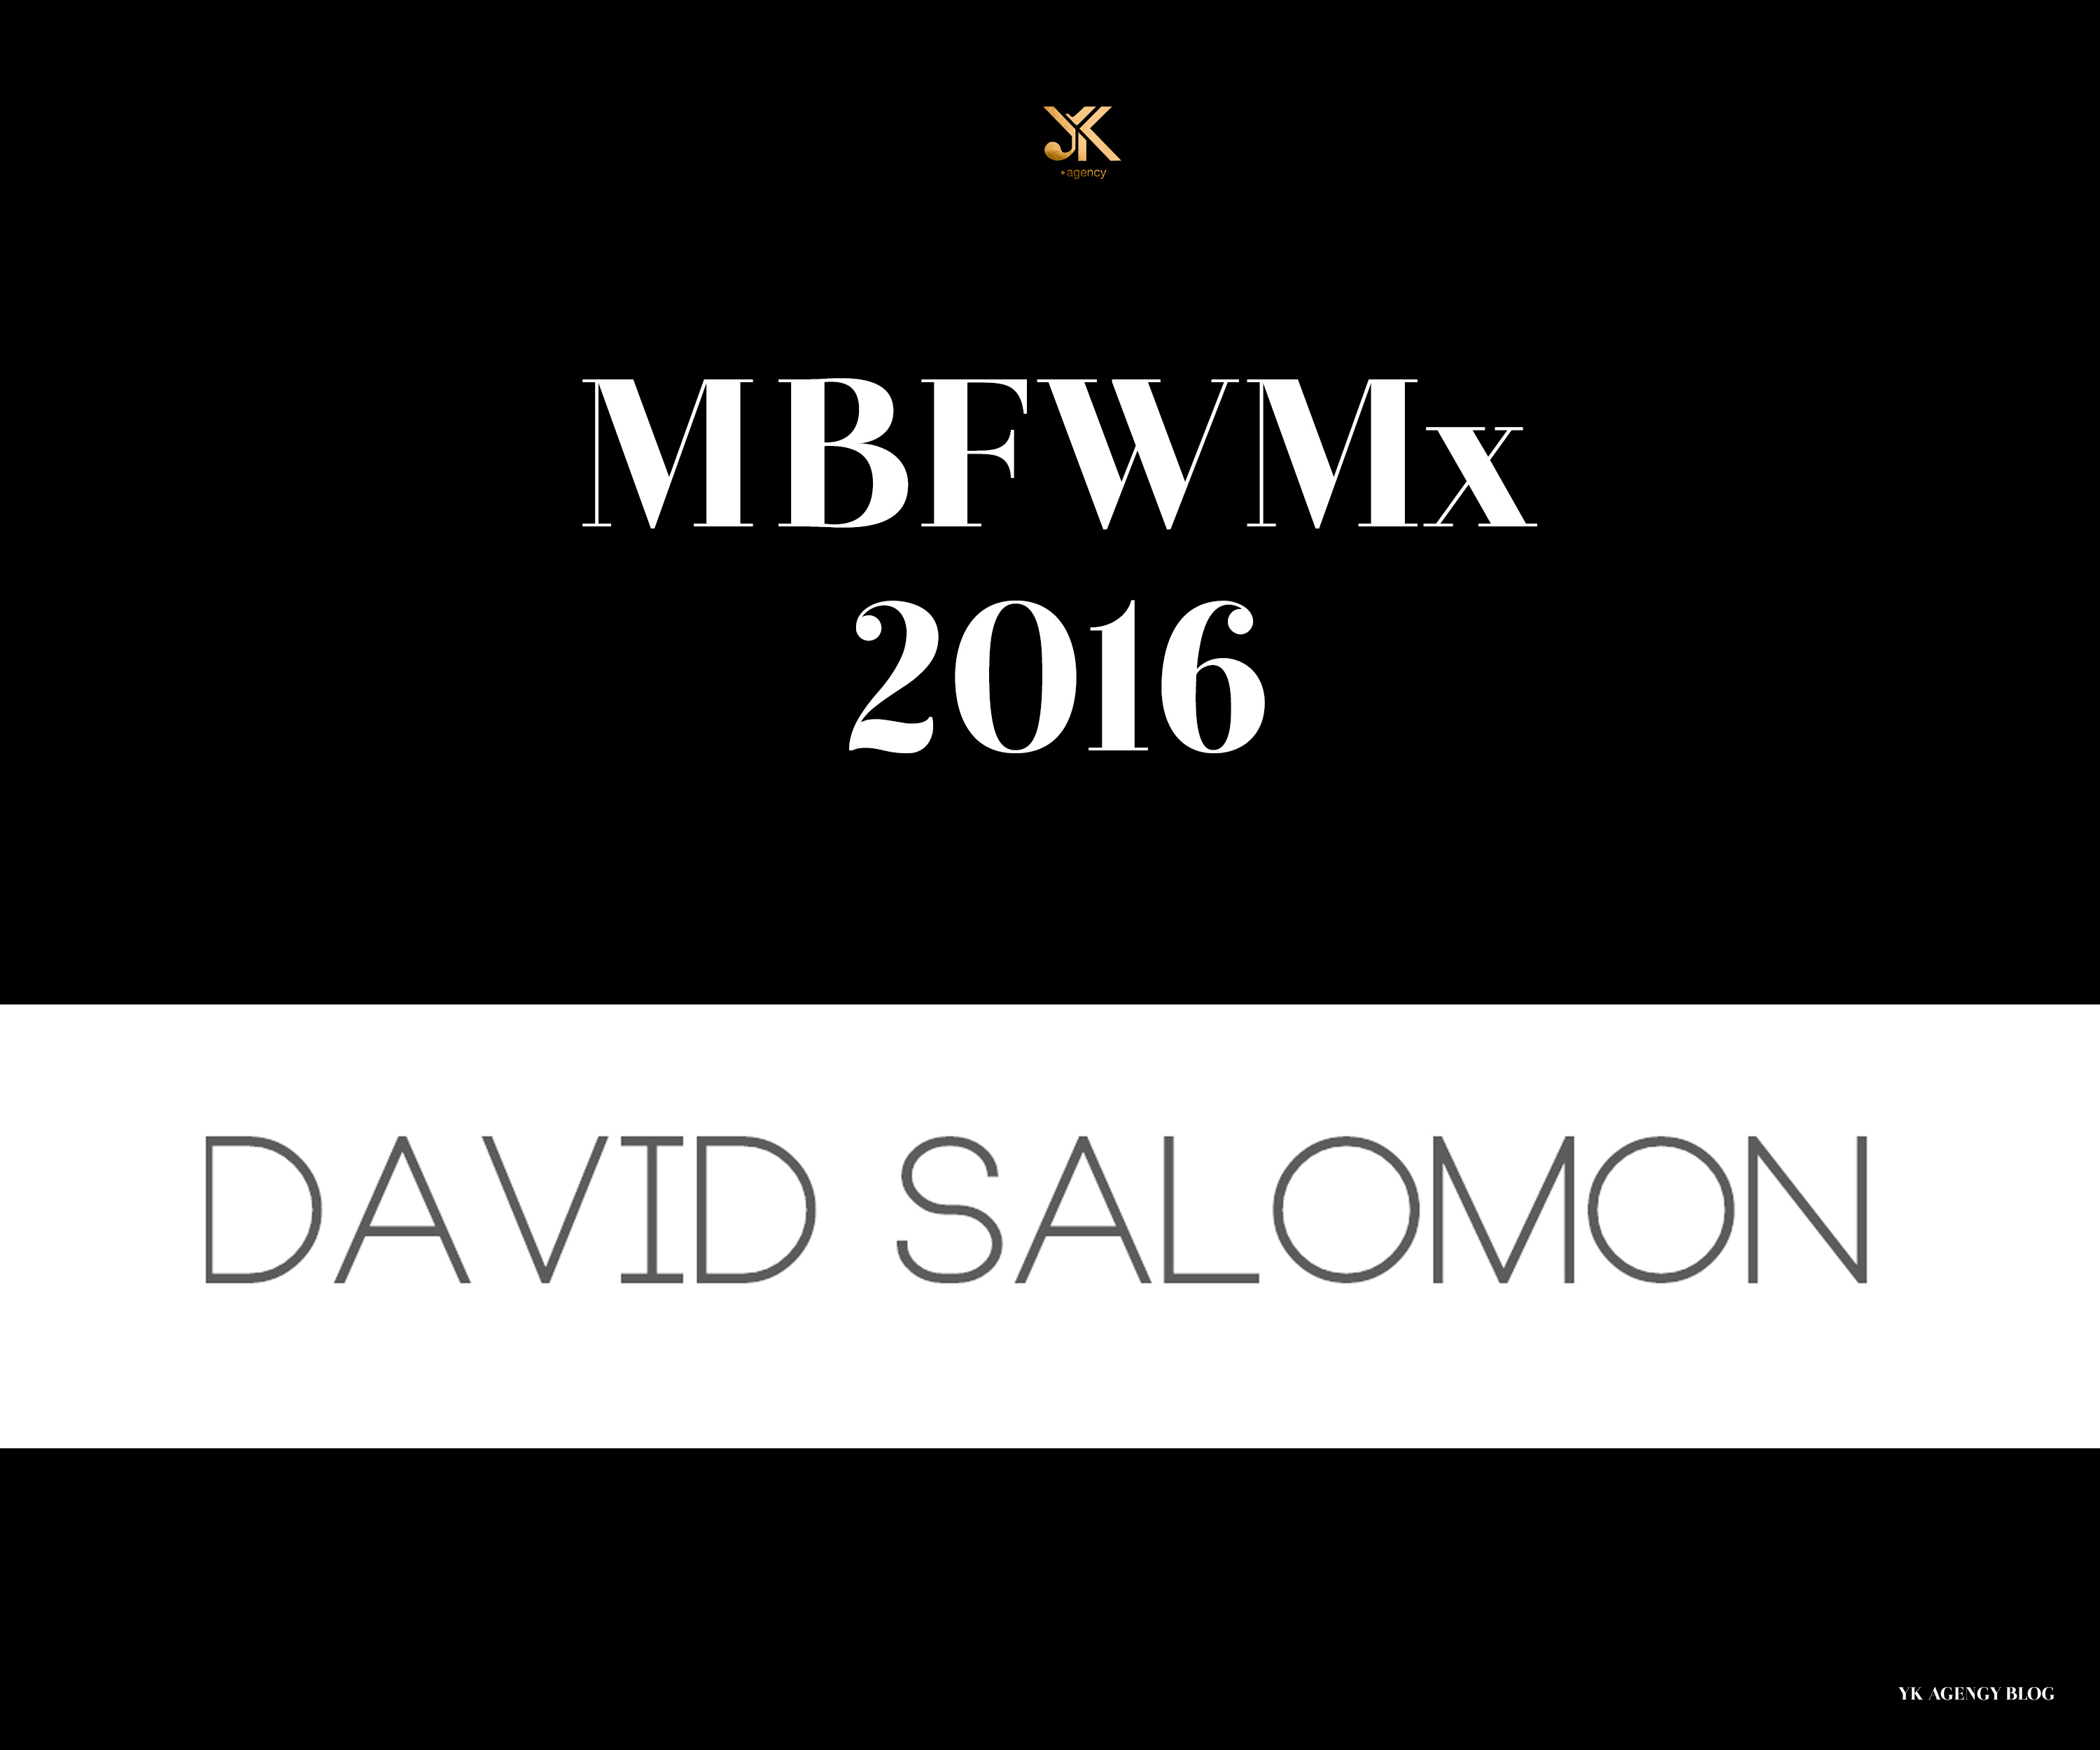 mbfwmx la reinvencion de david salomon ykagency runway models agency in mexico city